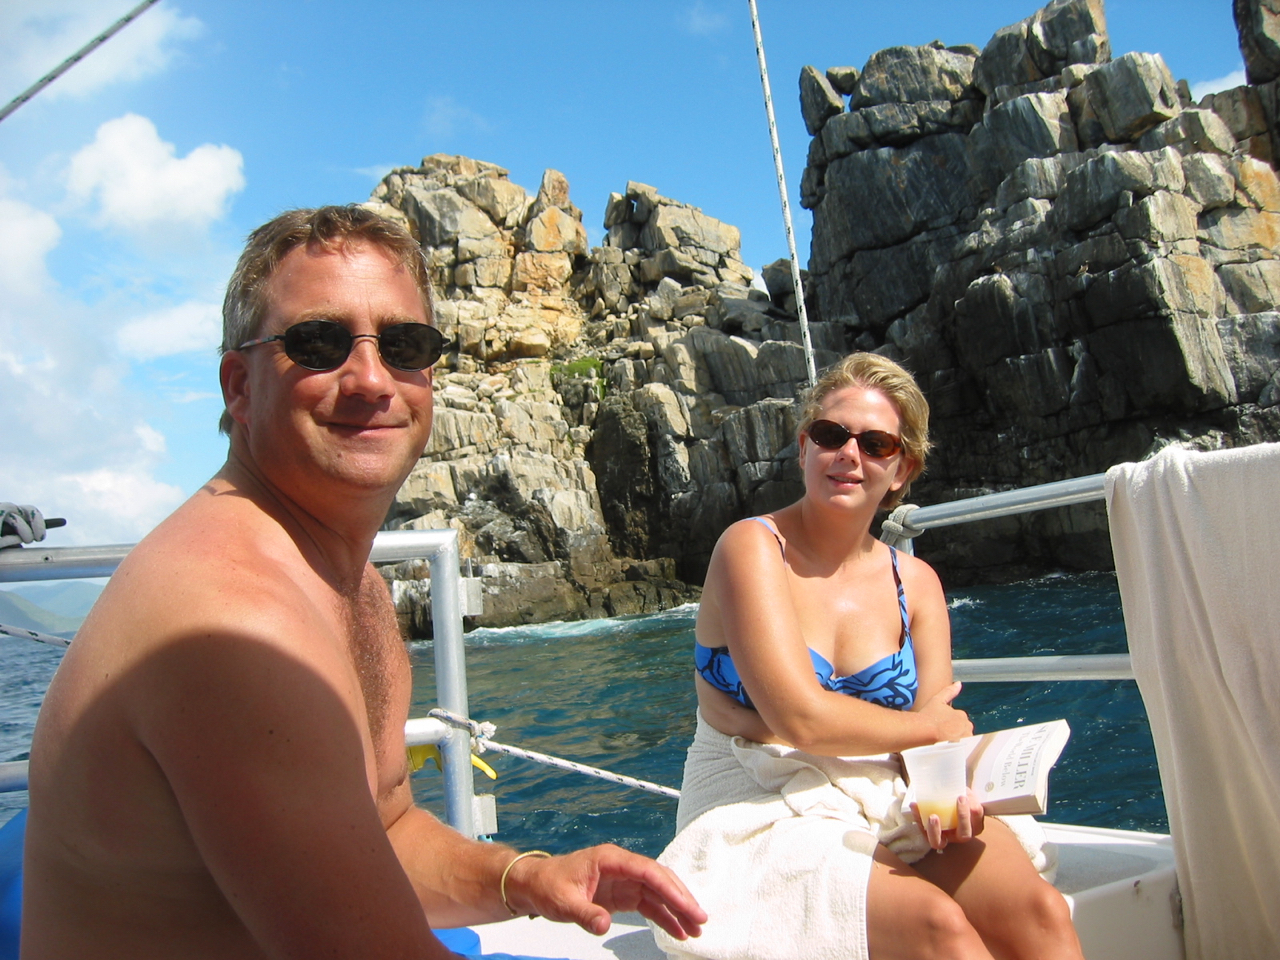 Day 4 - All day sailboat snorkel trip on Calypso catamaran!